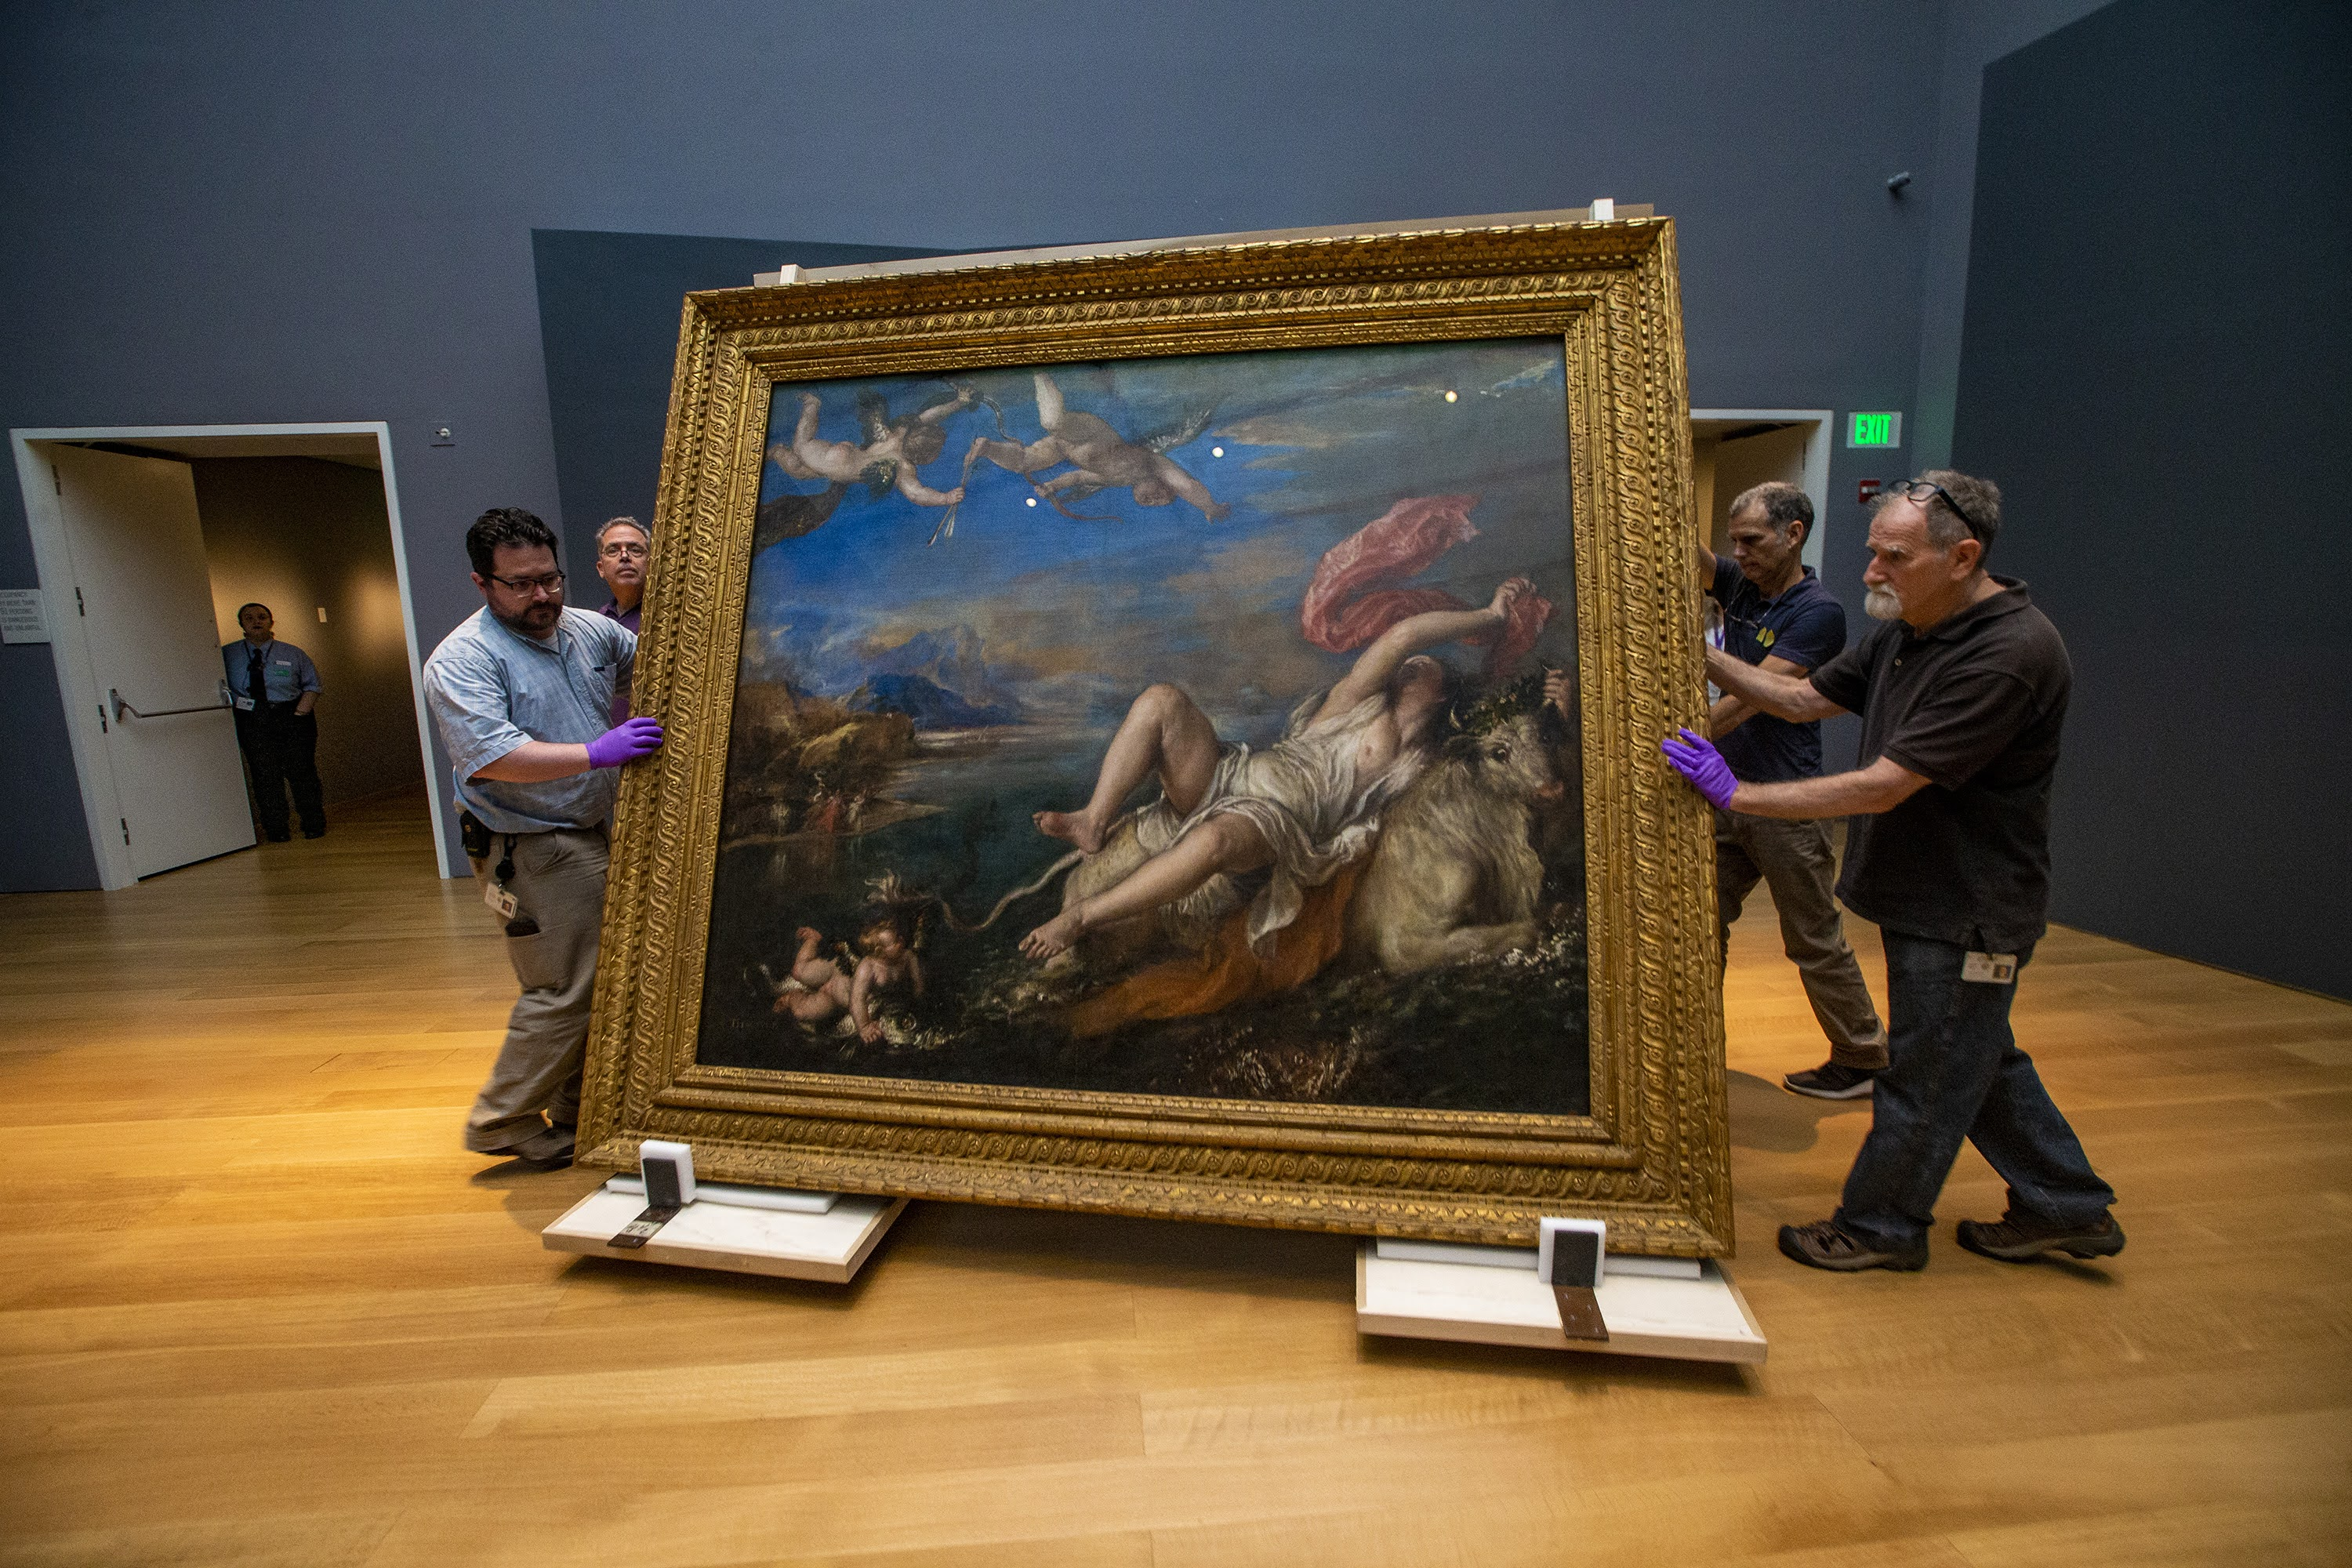 """Installers move Titian's """"The Rape of Europa"""" across the Hostetter Gallery after its return to the Isabella Stewart Gardner Museum from being on loan to the Prado Museum in Madrid, Spain. (Jesse Costa/WBUR)"""